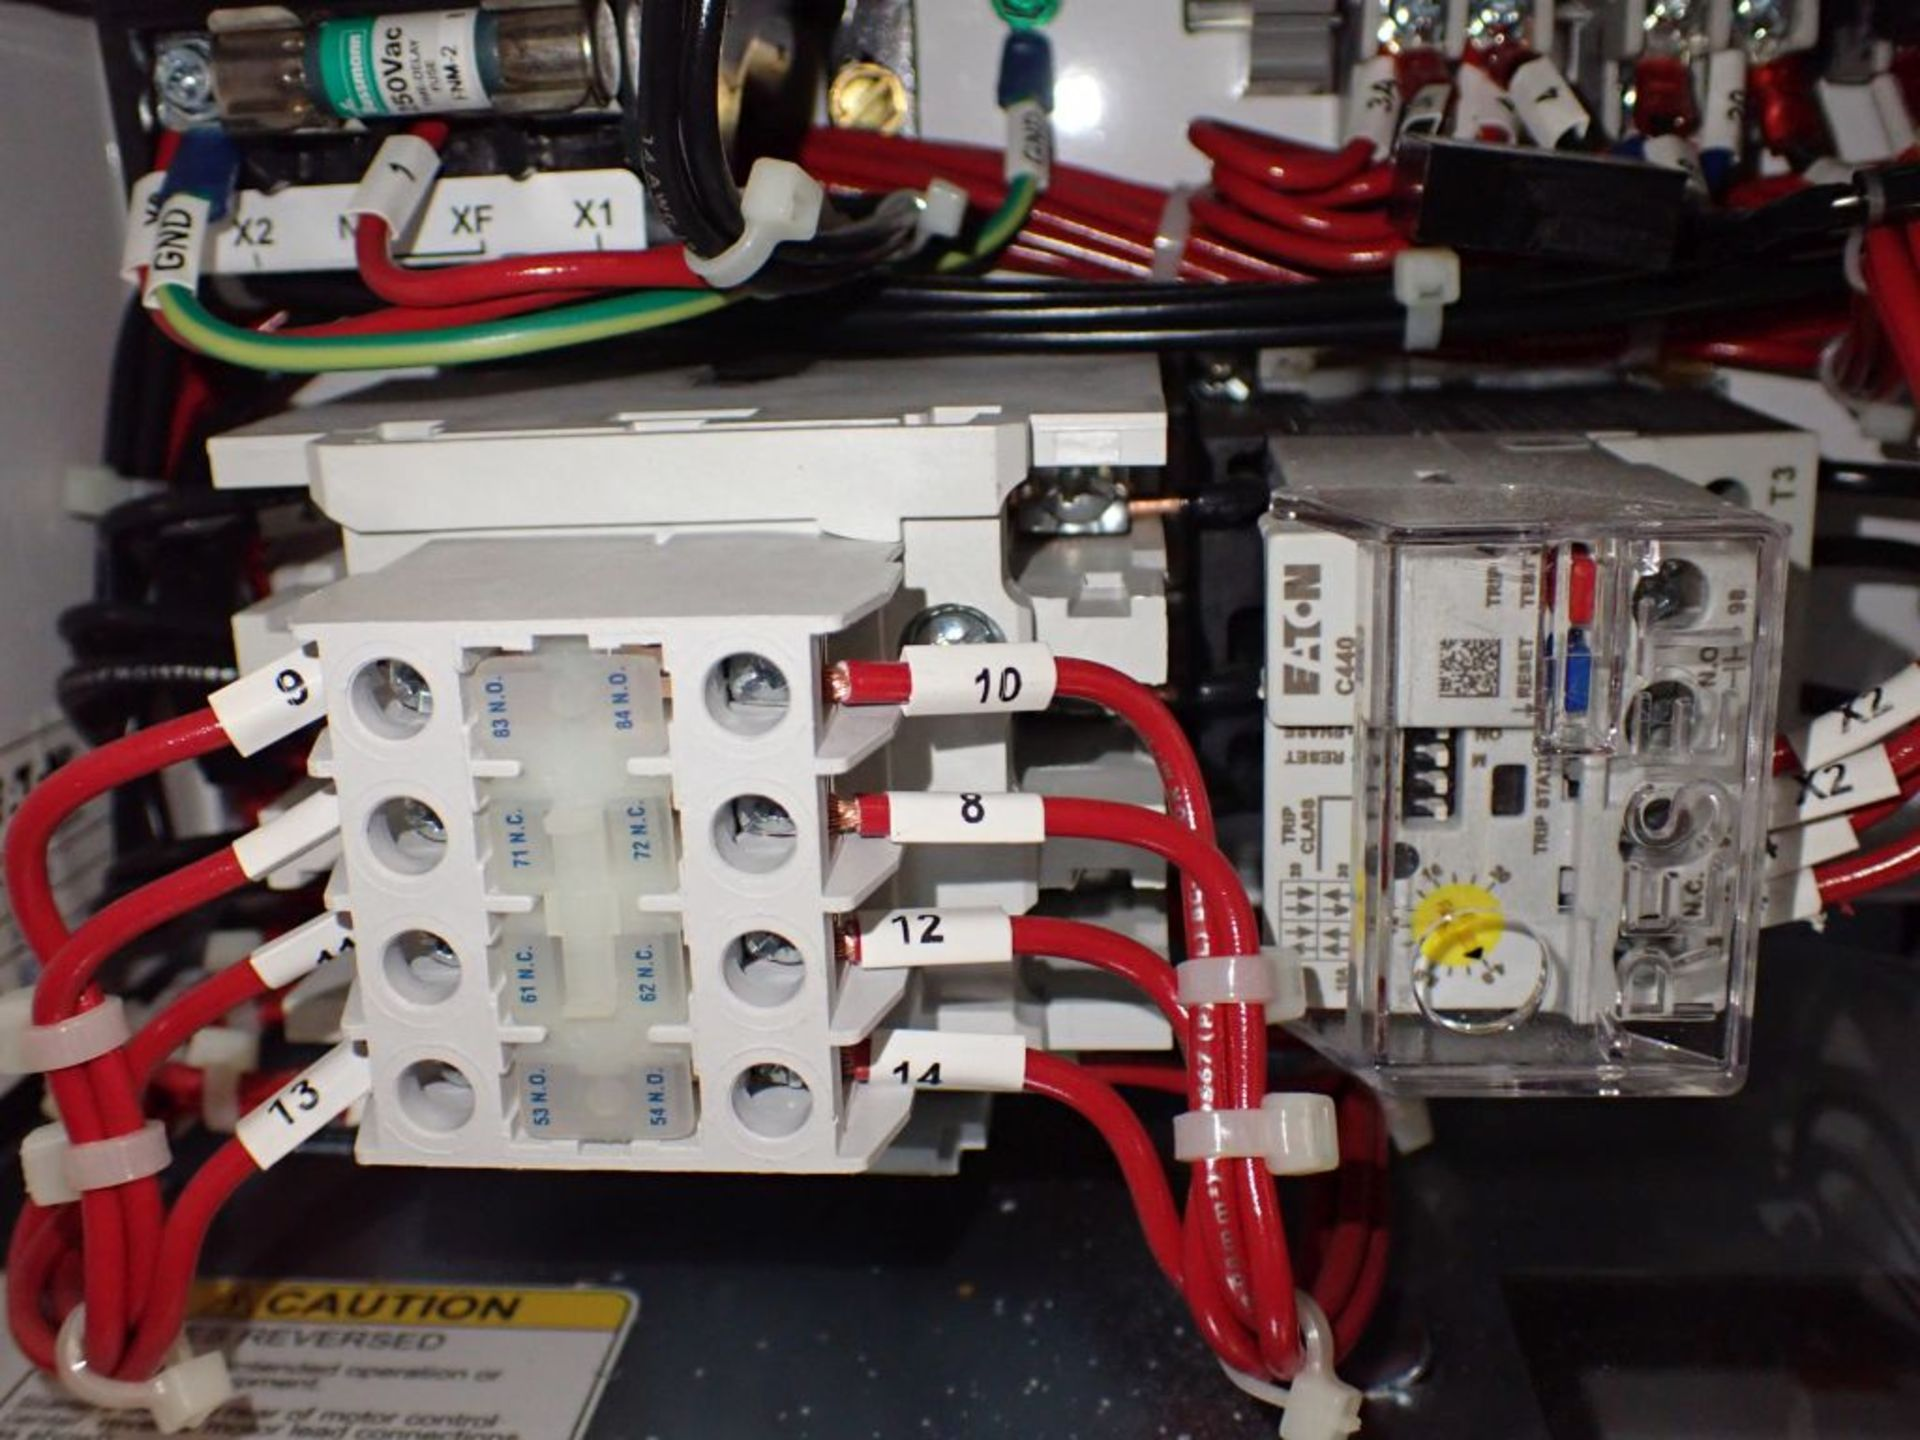 Eaton Freedom 2100 Series Motor Control Center | (11) F206-30A-10HP; (5) F206-15A-10HP; (1) SVX900- - Image 24 of 102